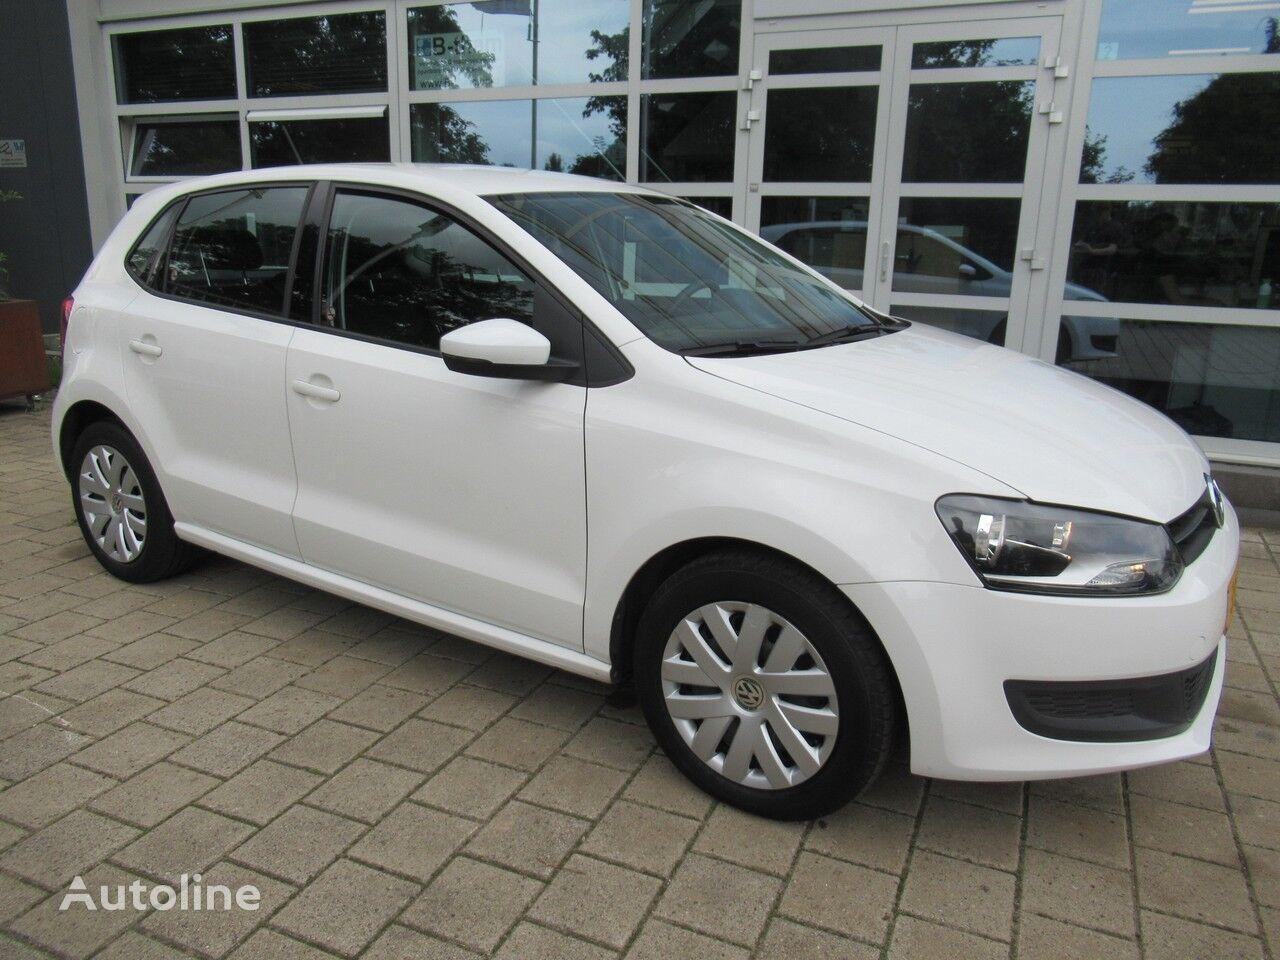 VOLKSWAGEN Polo 1.2i 51KW CNG 5-drs. AIRCO BlueMotion hatchback